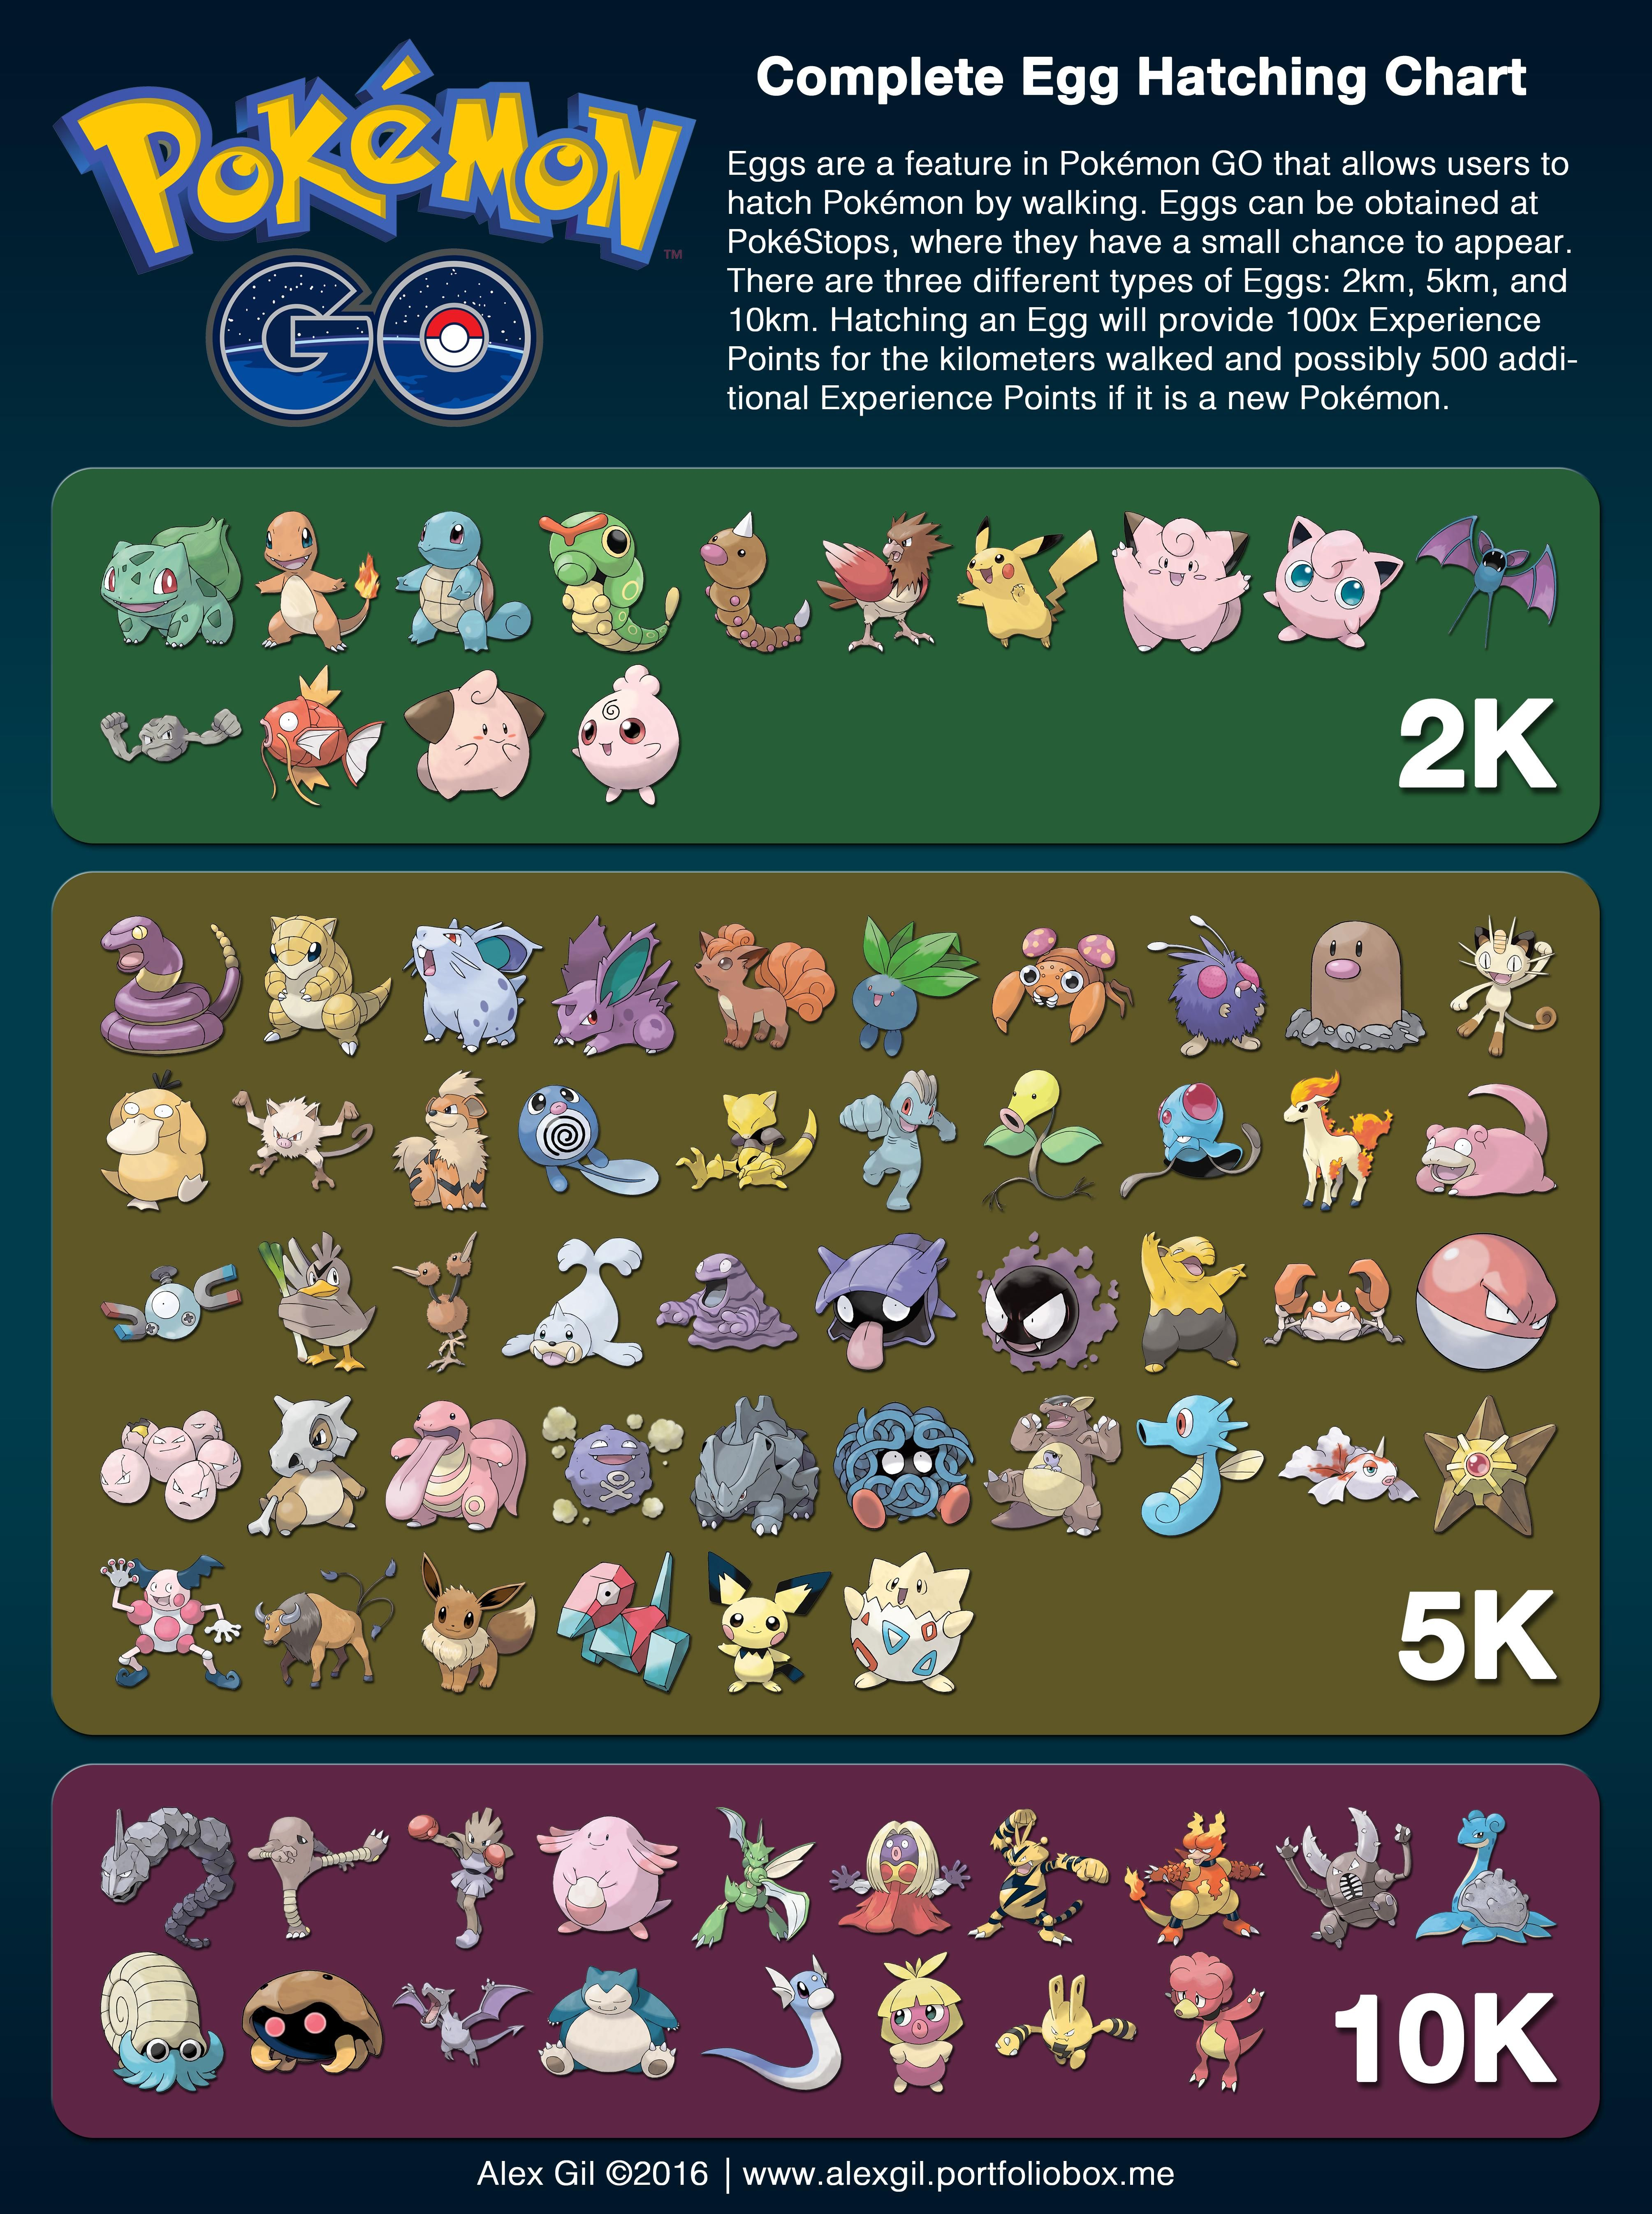 [News] The Complete Egg Hatching Chart! (A personal